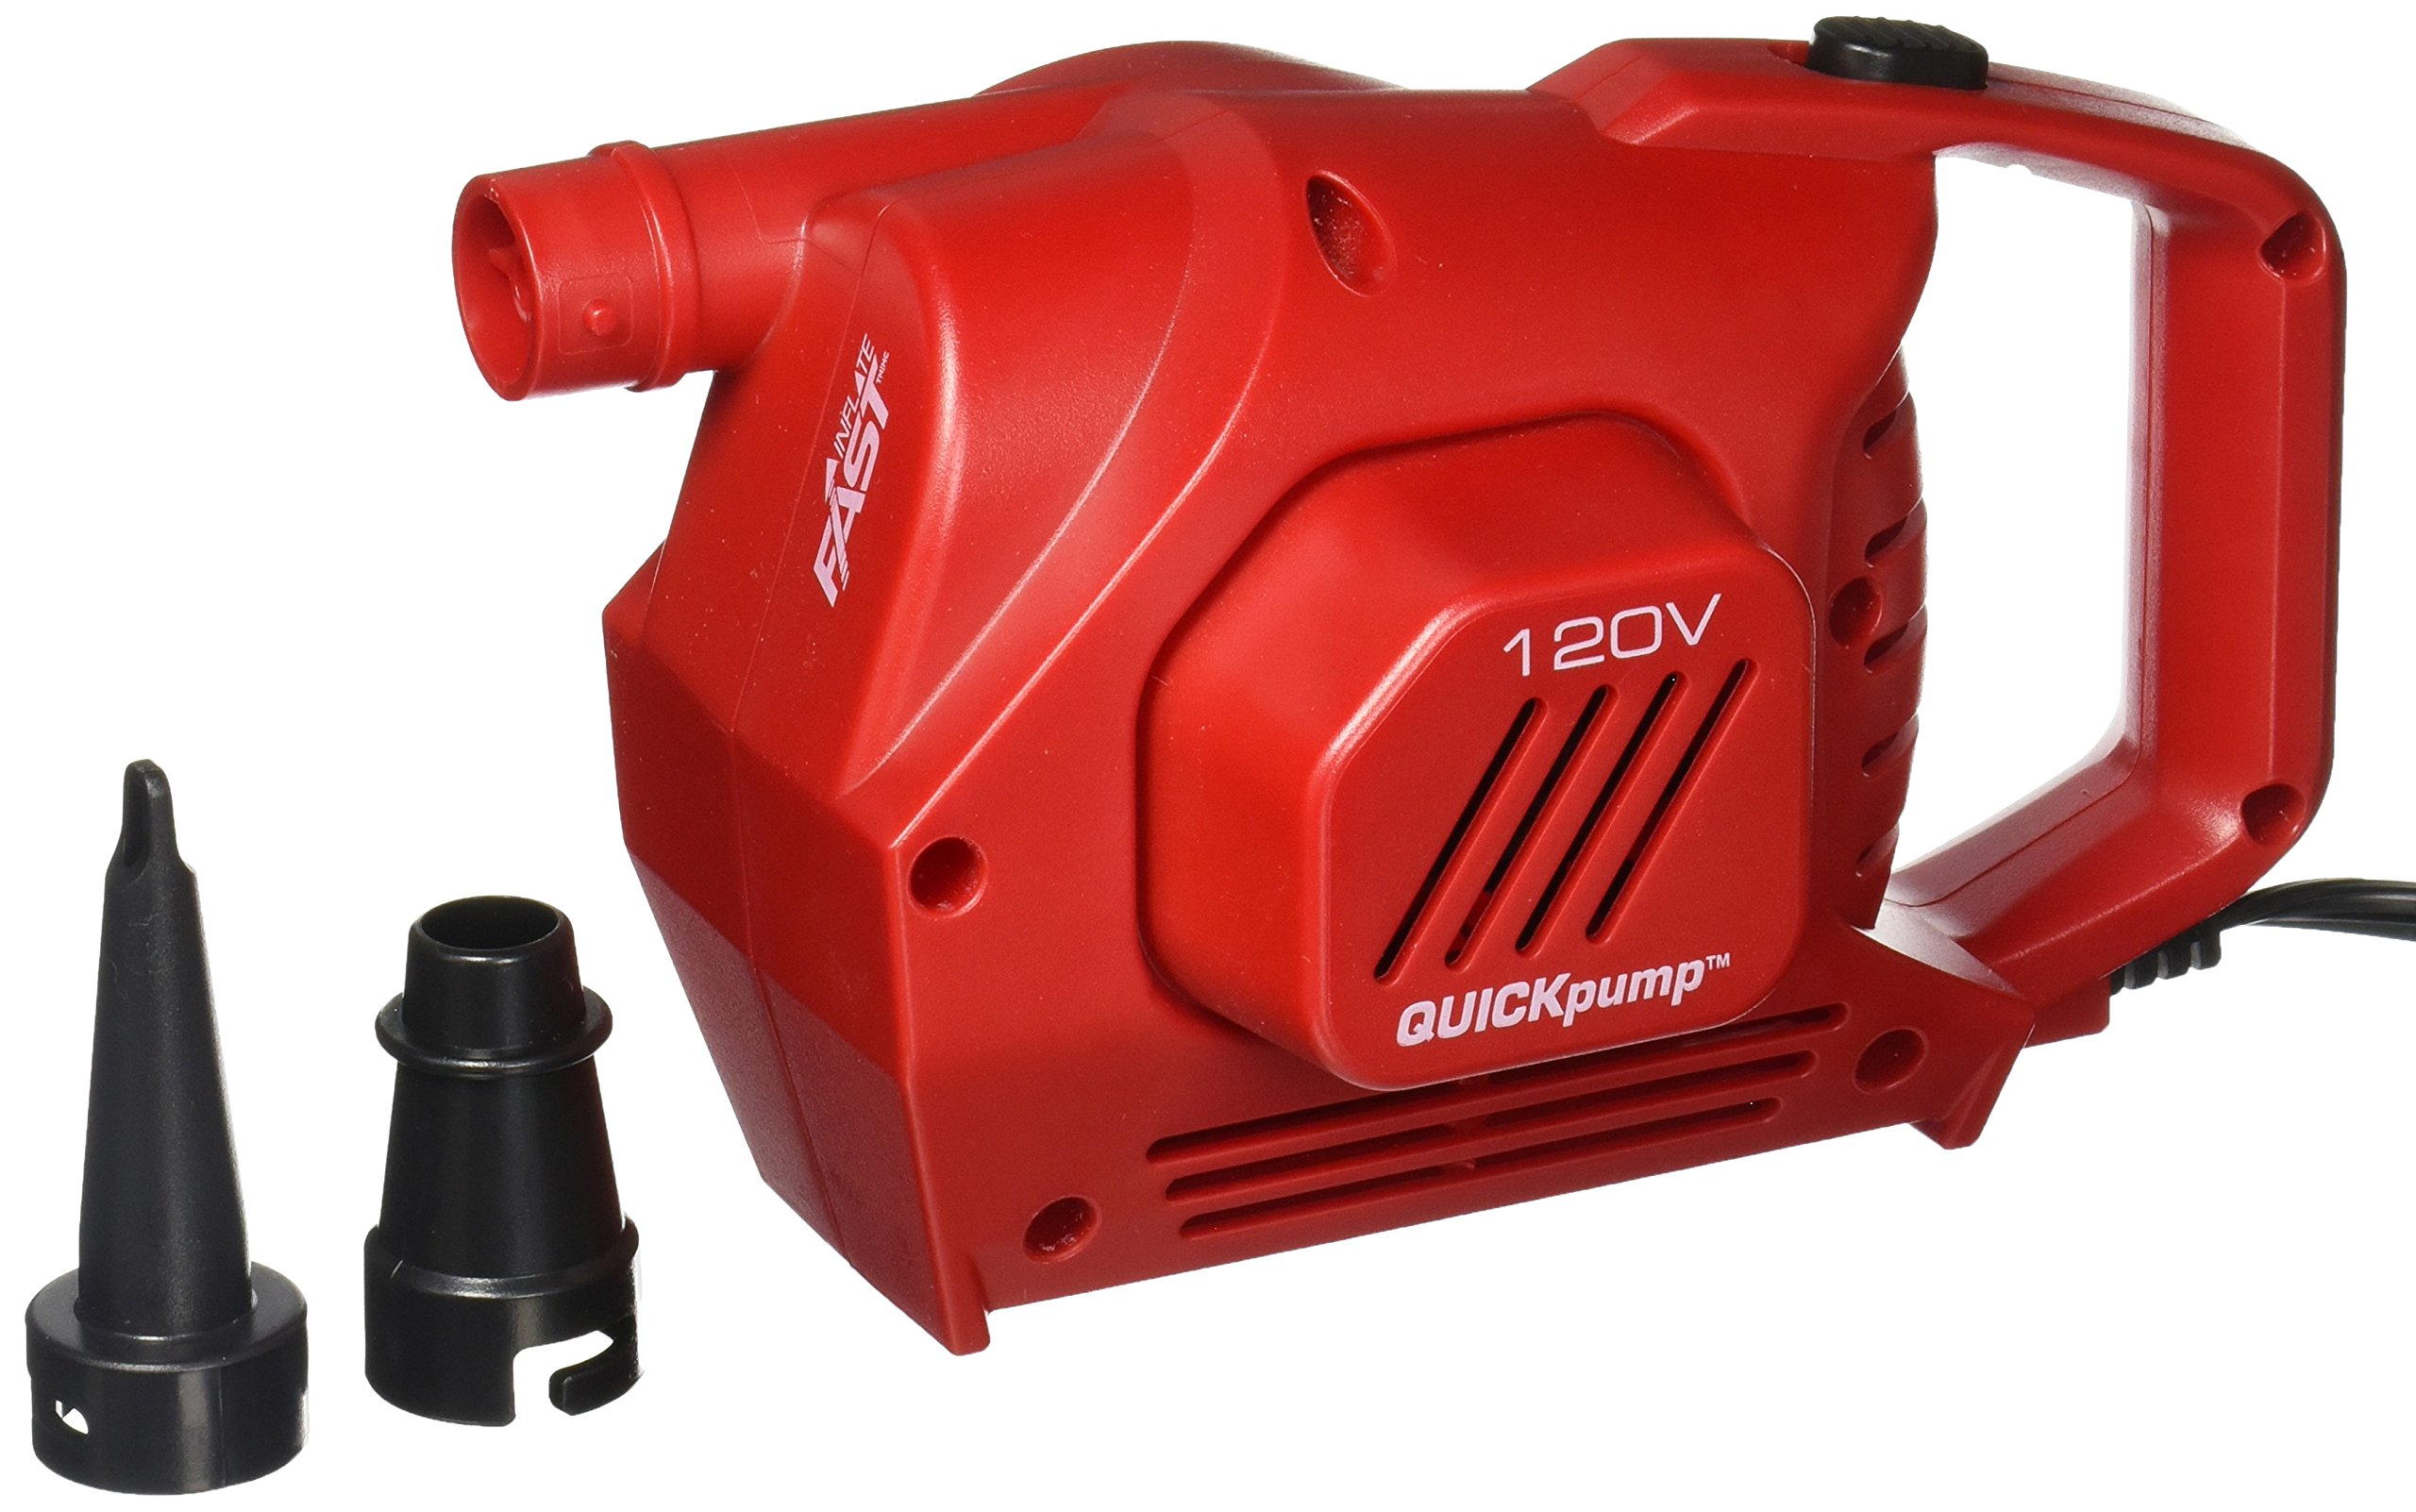 Coleman 120V Electric Quick Pump, Colors May Vary